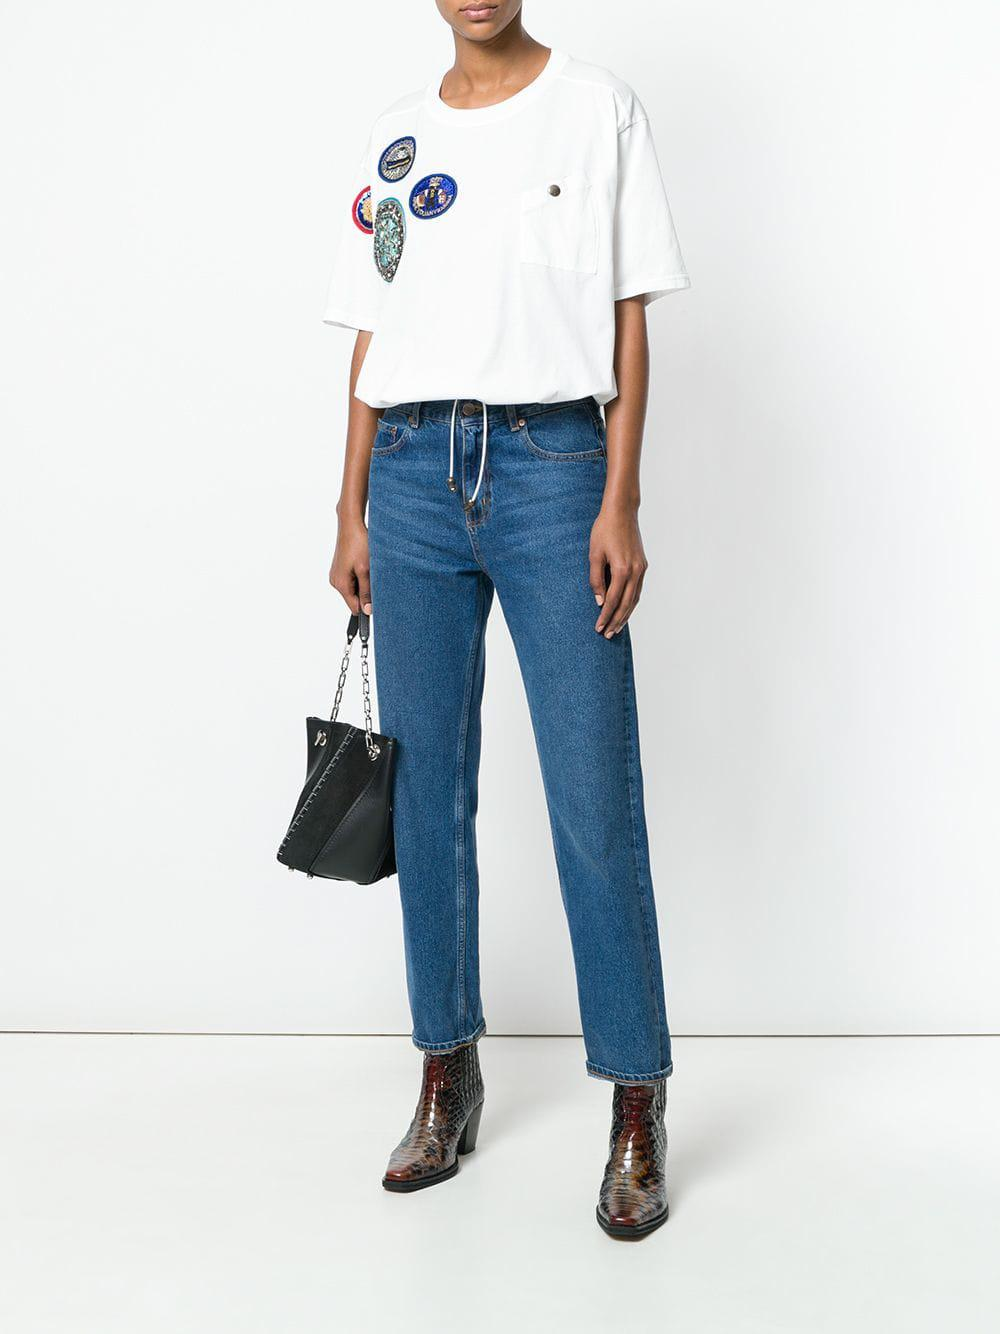 Mrs Shirt Drawstring In Italy Mramp; Lyst Save T White Patched 77 rxBodCe